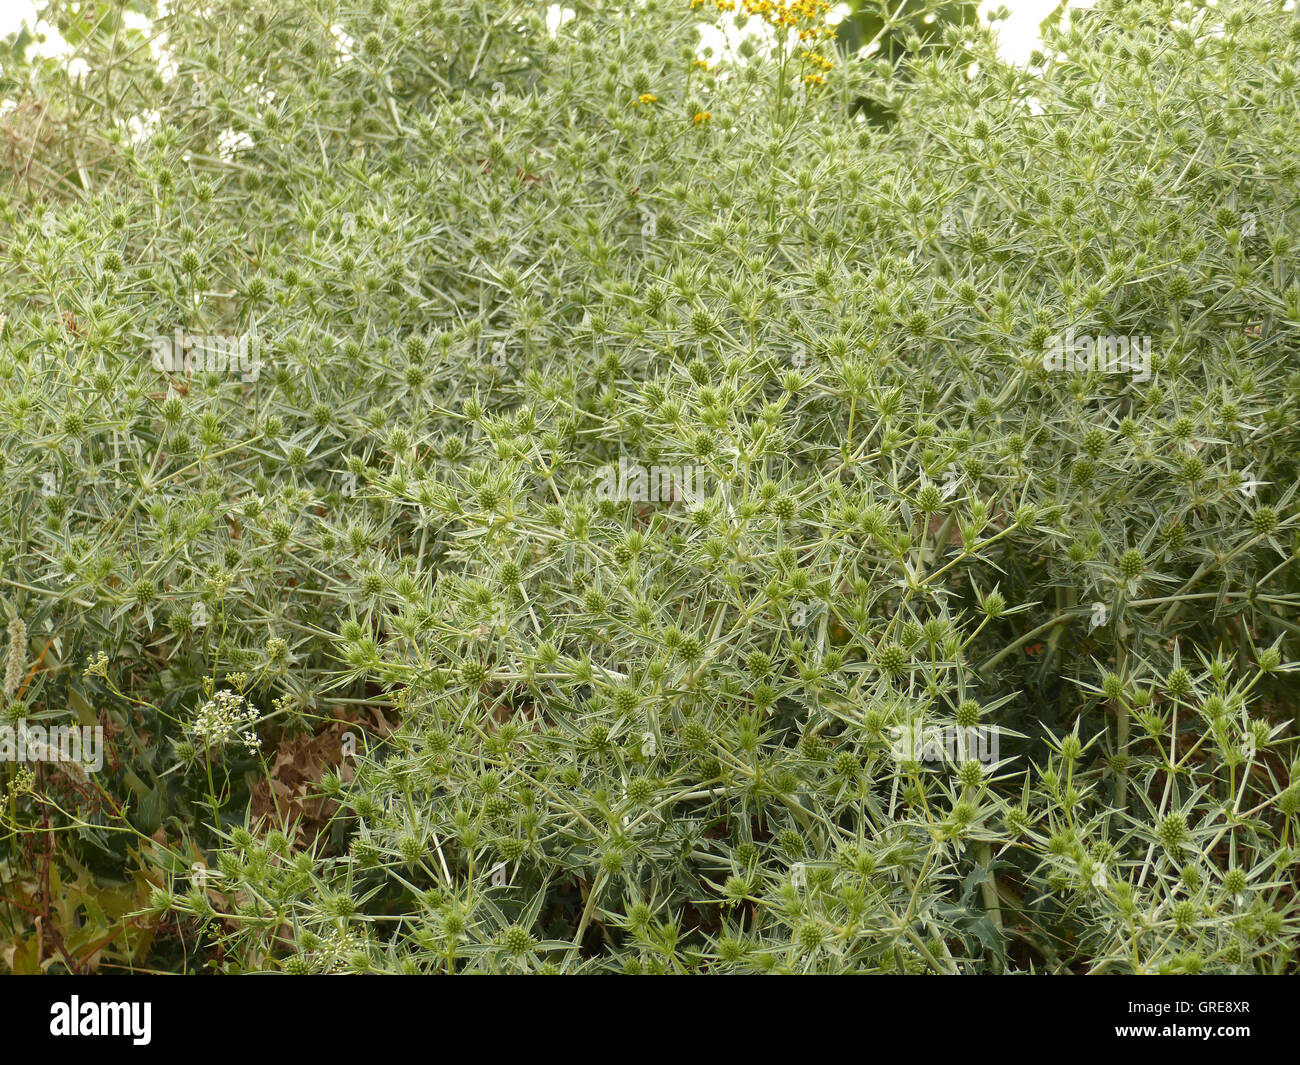 Countless Thistles - Stock Image